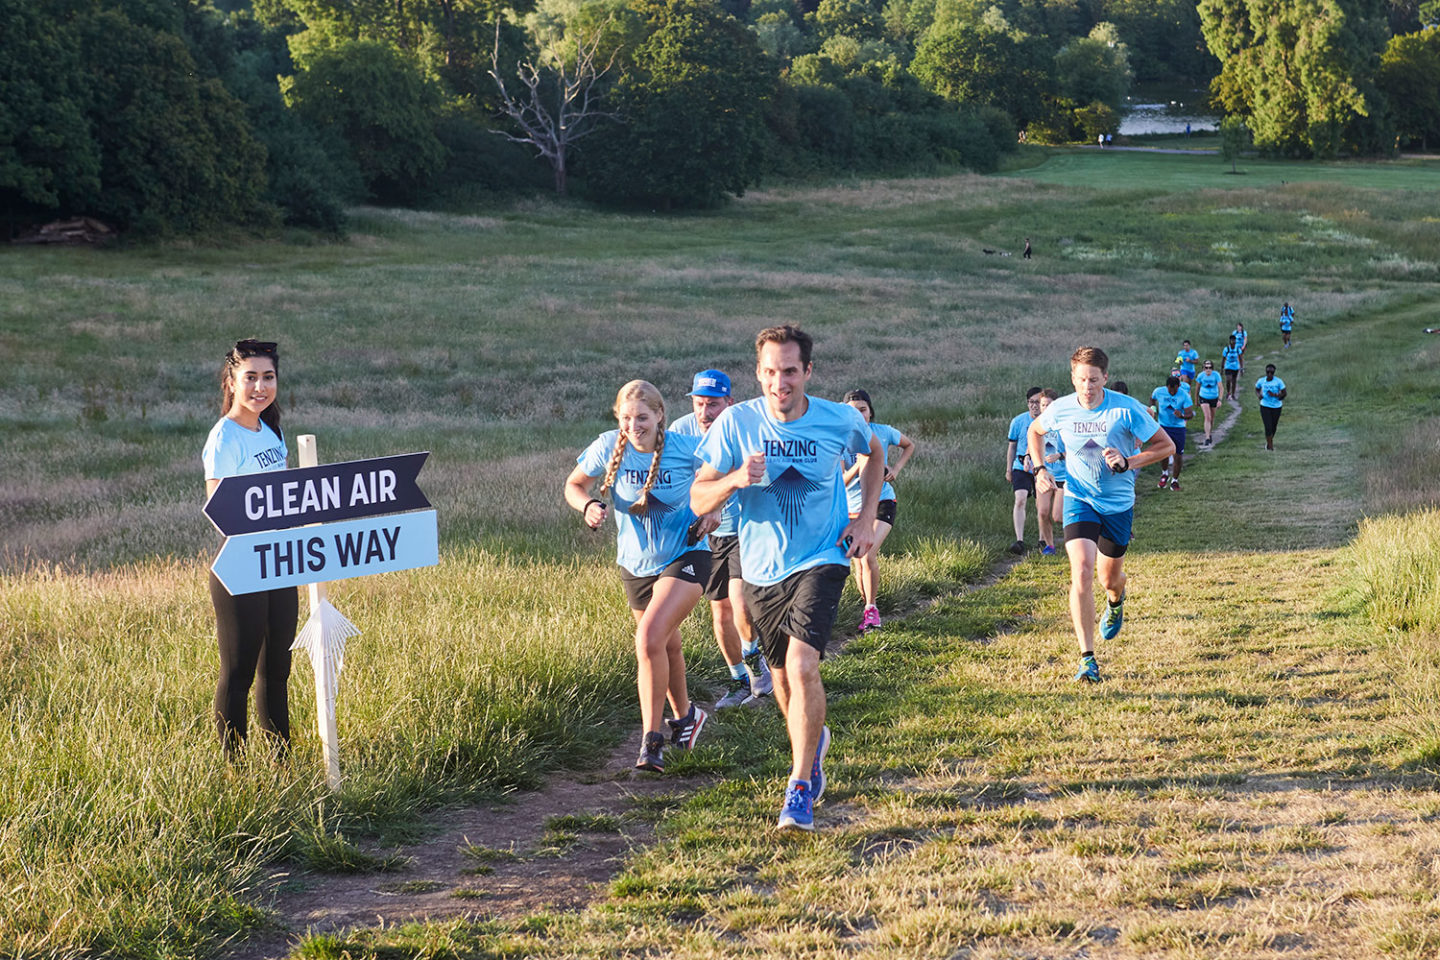 In 2019, TENZING launched a 'Clean Air Run Club' in London that tackles health, fitness and London's air pollution with the use of technology.